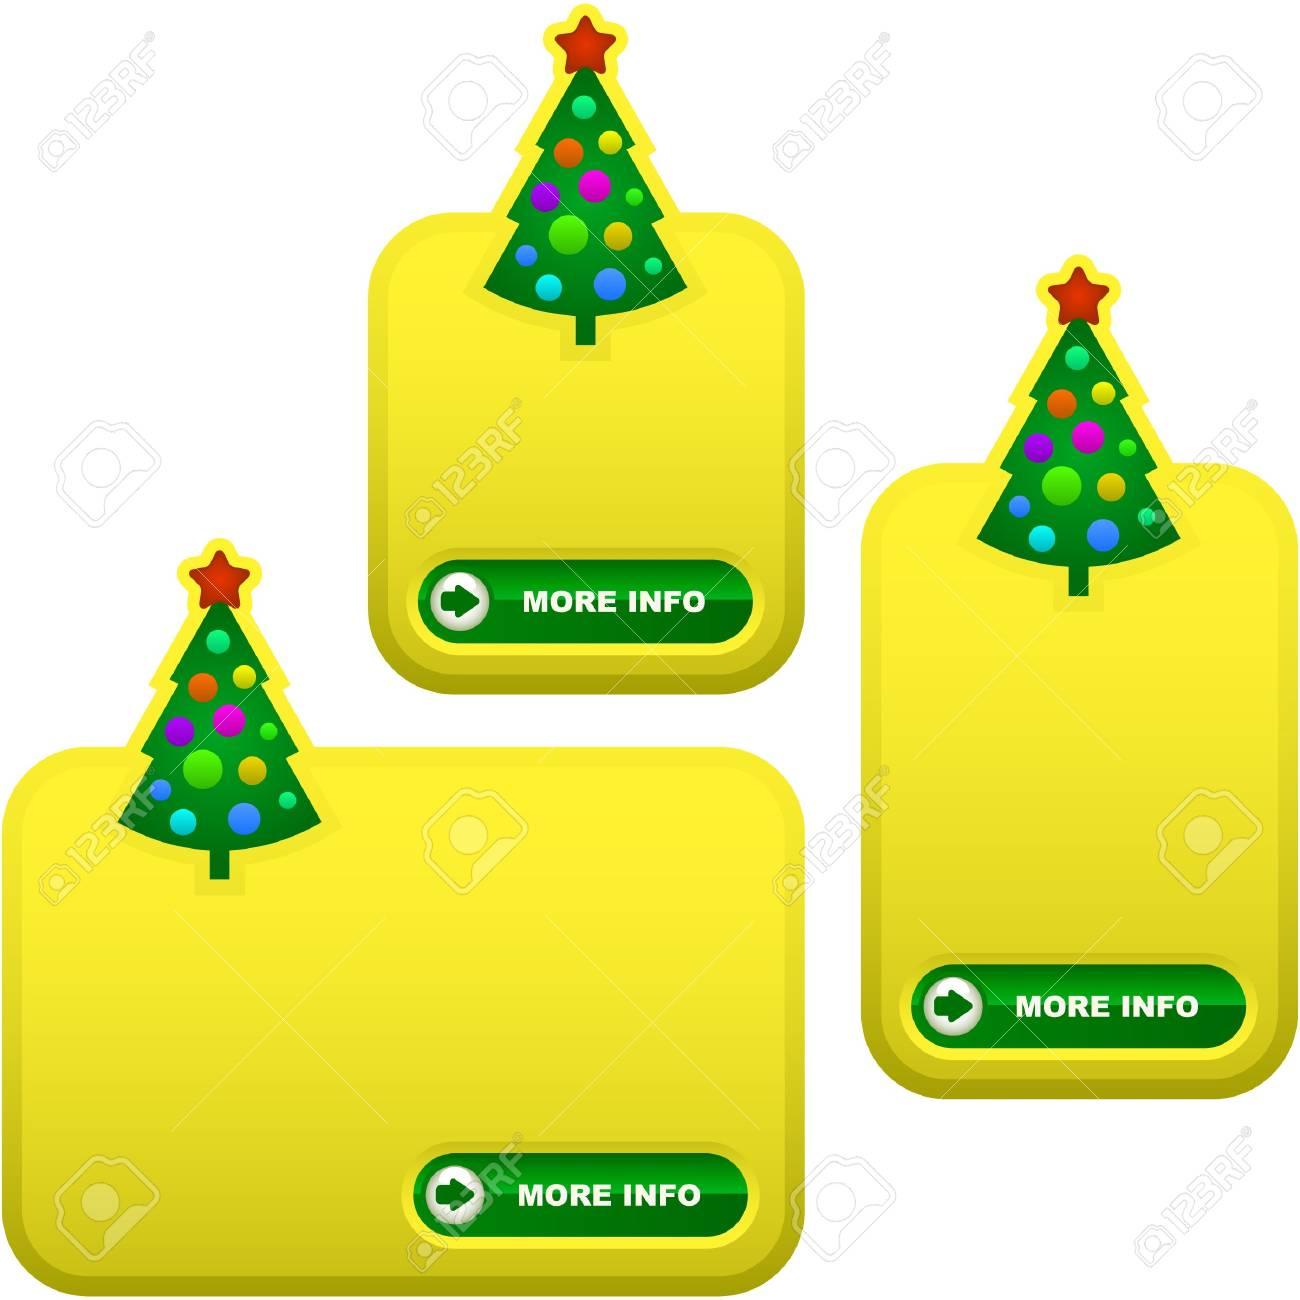 Set of New Year's banners for advertising Stock Photo - 8236824